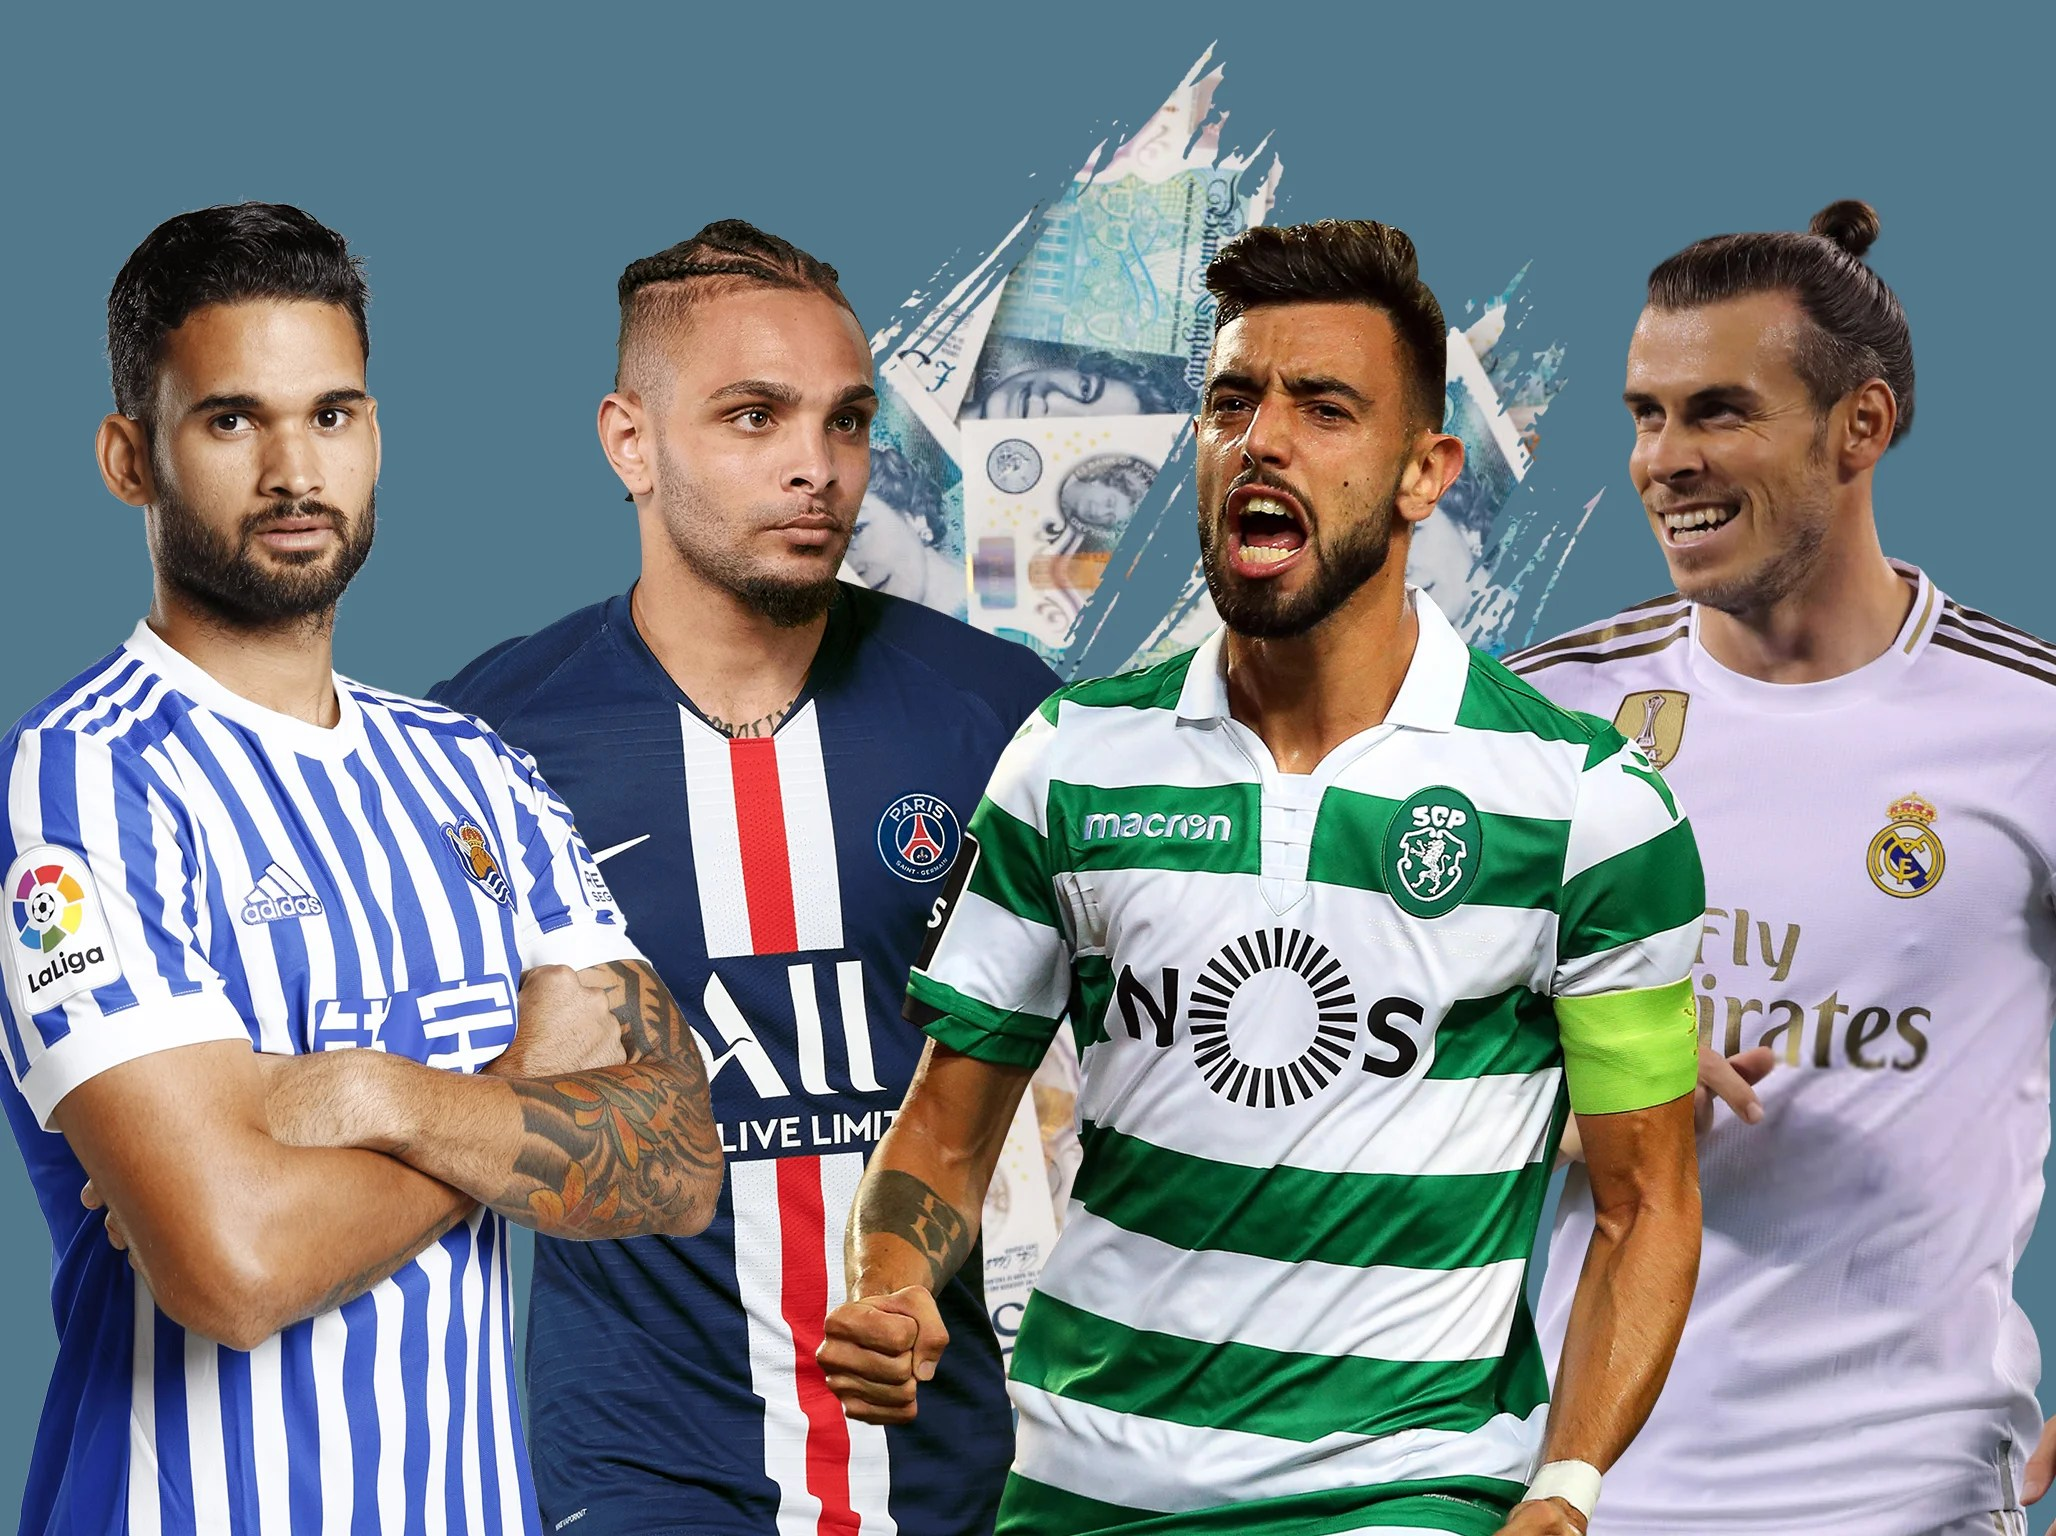 Transfer news LIVE: Man United's Bruno Fernandes deal stalled, Arsenal prepared for Pierre-Emerick Aubameyang's bid plus the latest Liverpool and Chelsea